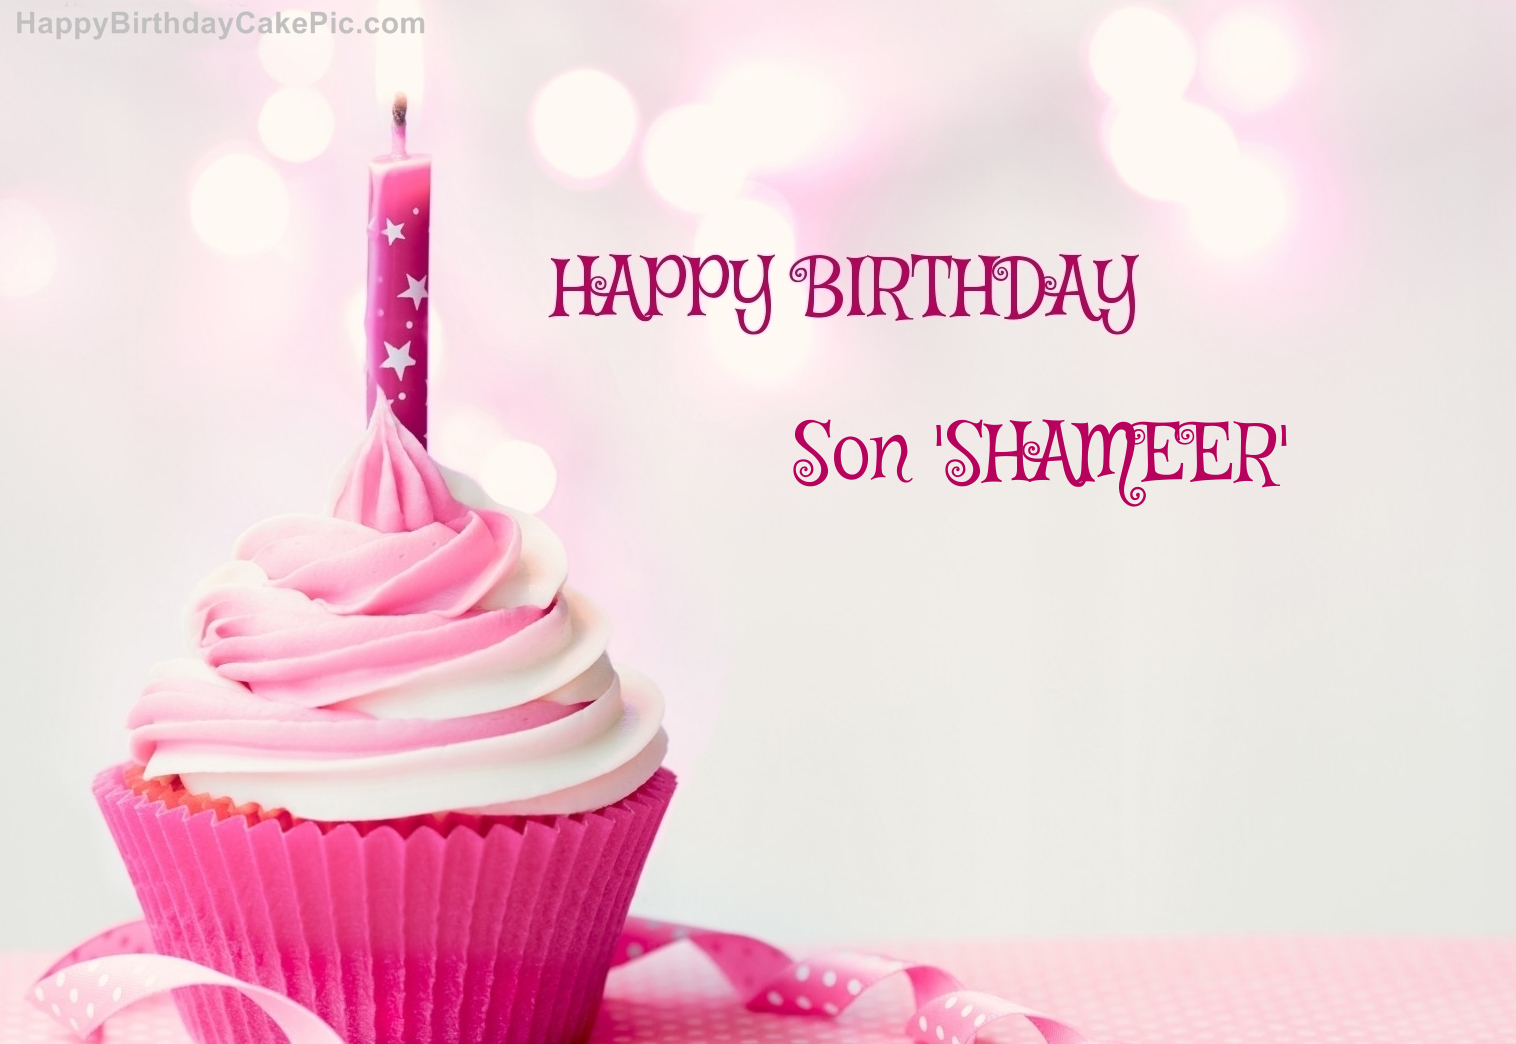 Happy Birthday Cupcake Candle Pink Cake For Son Shameer